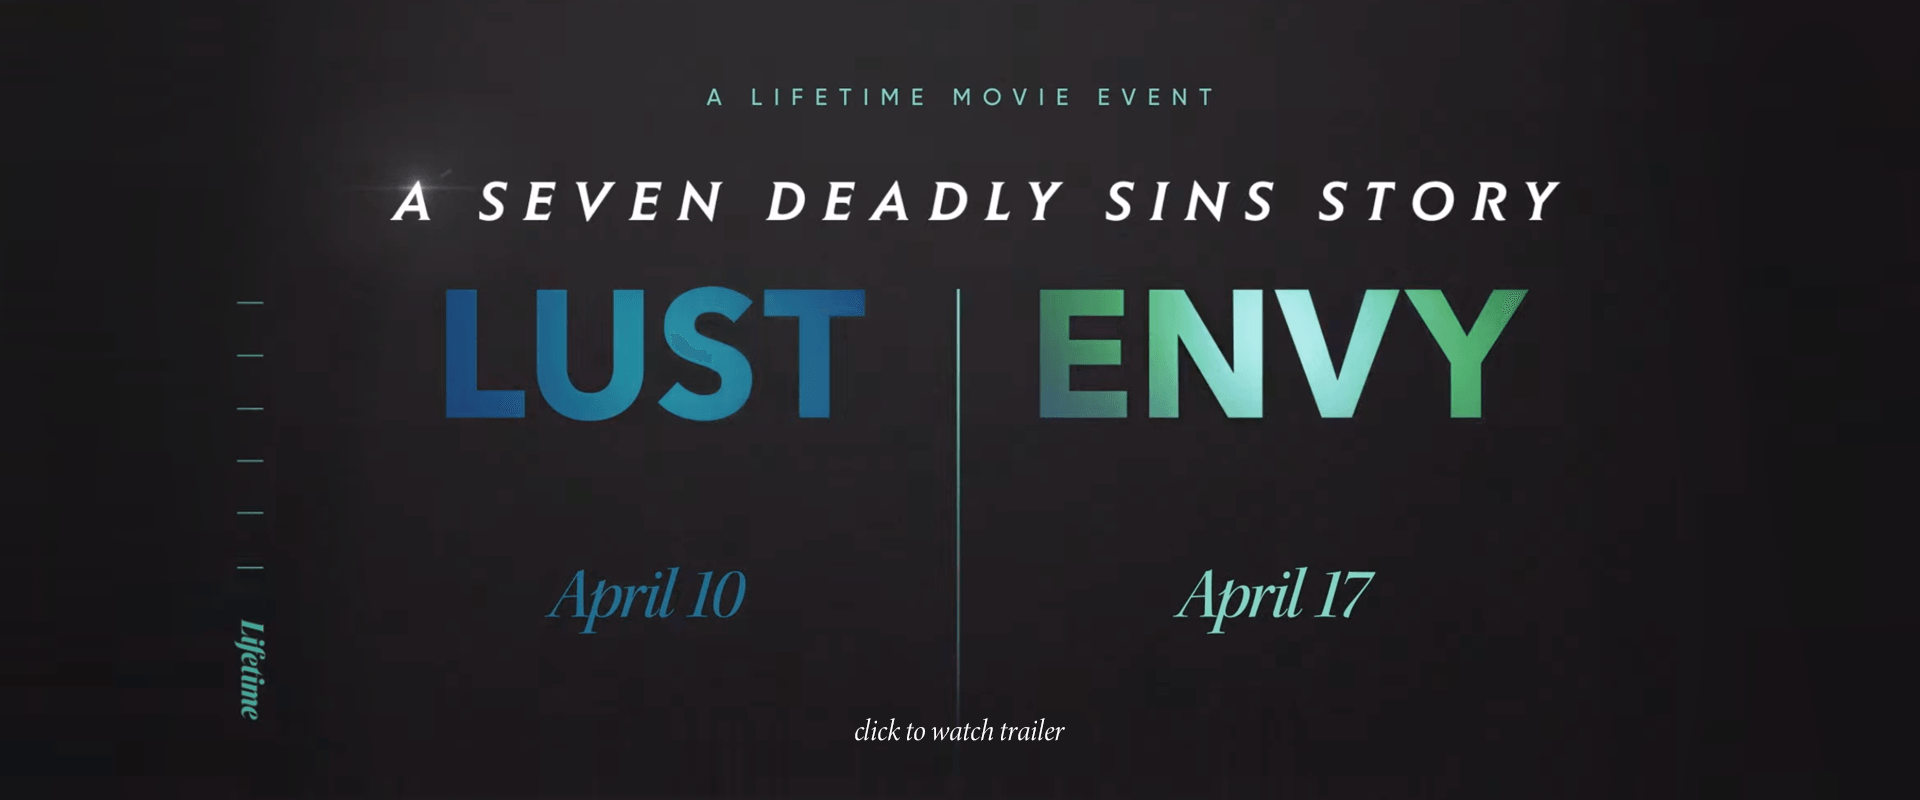 Lust and Envy, a seven deadly sins series, coming soon to Lifetime